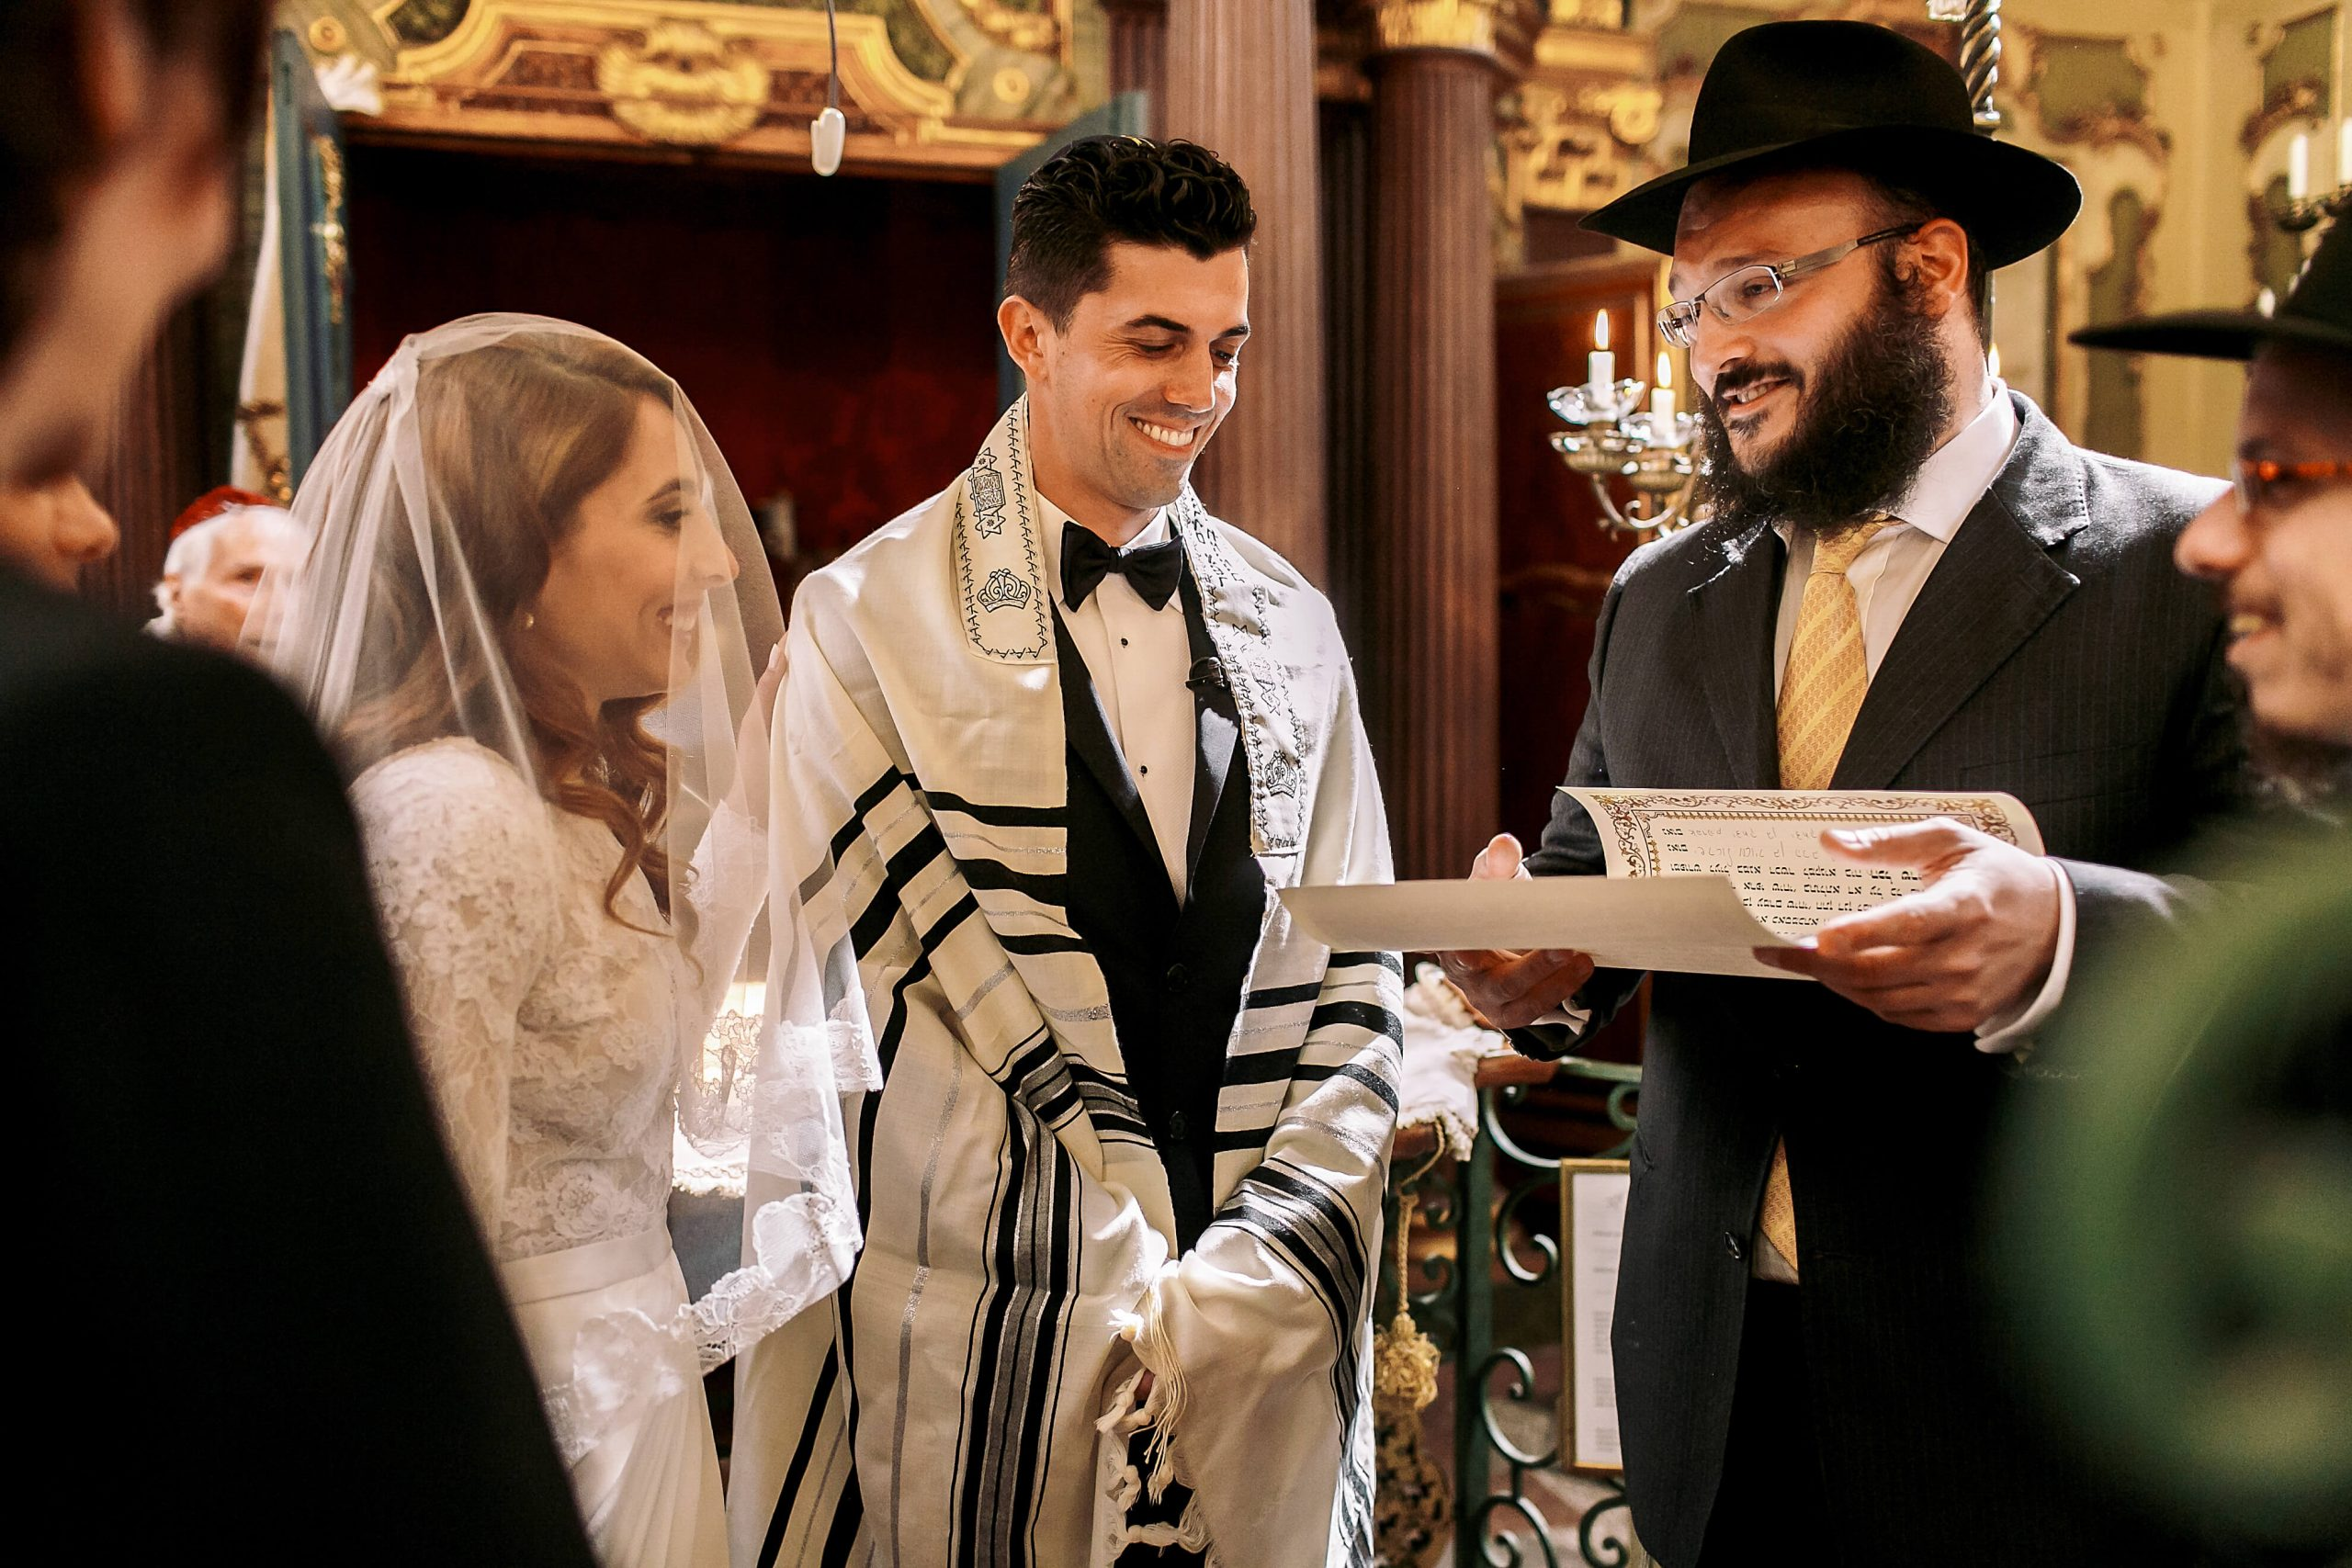 8 Traditions You Can See at Jewish Wedding